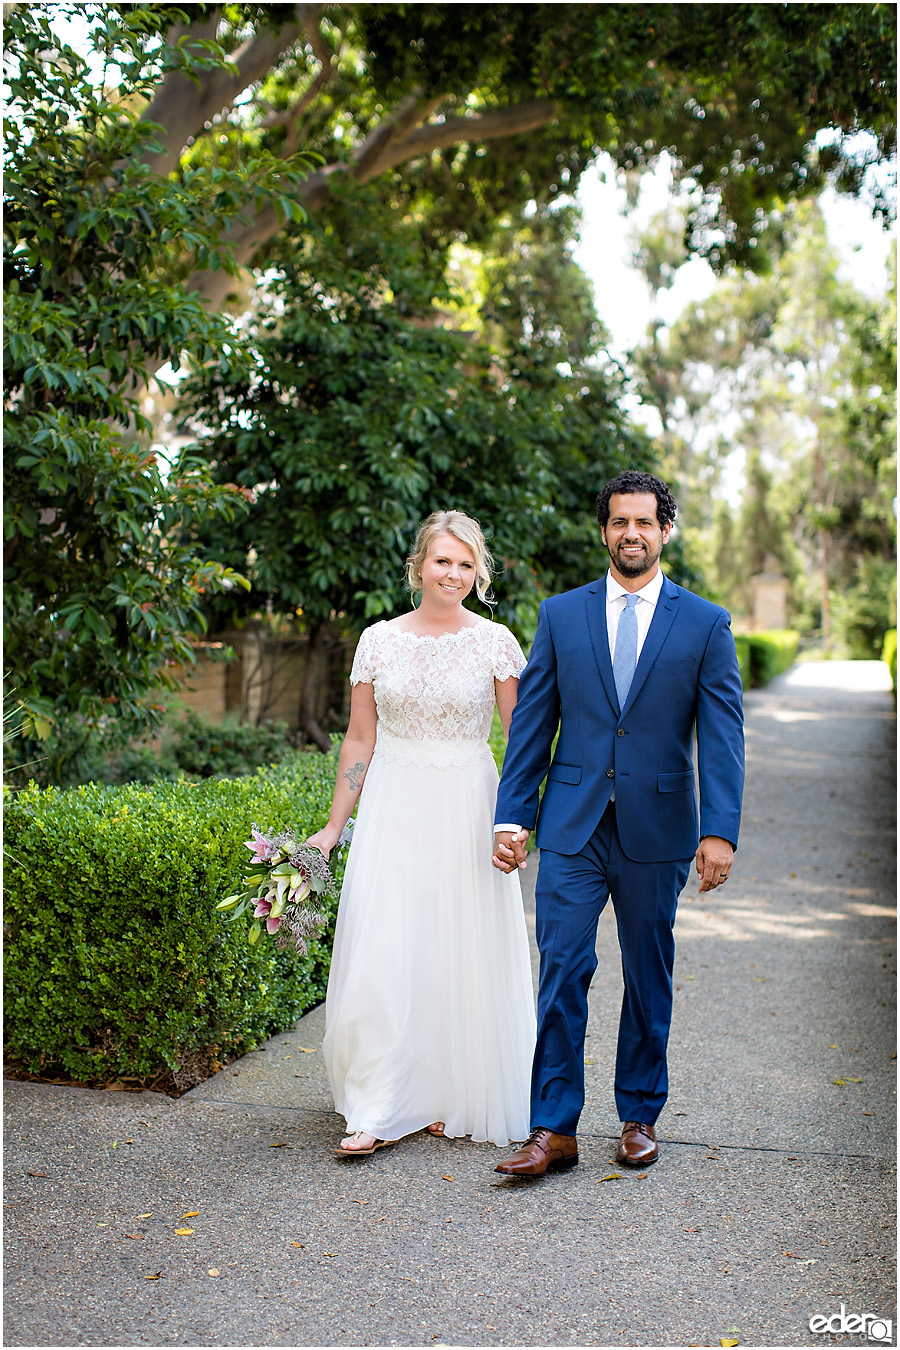 San Diego Elopement couple portrait at Alcazar Garden.